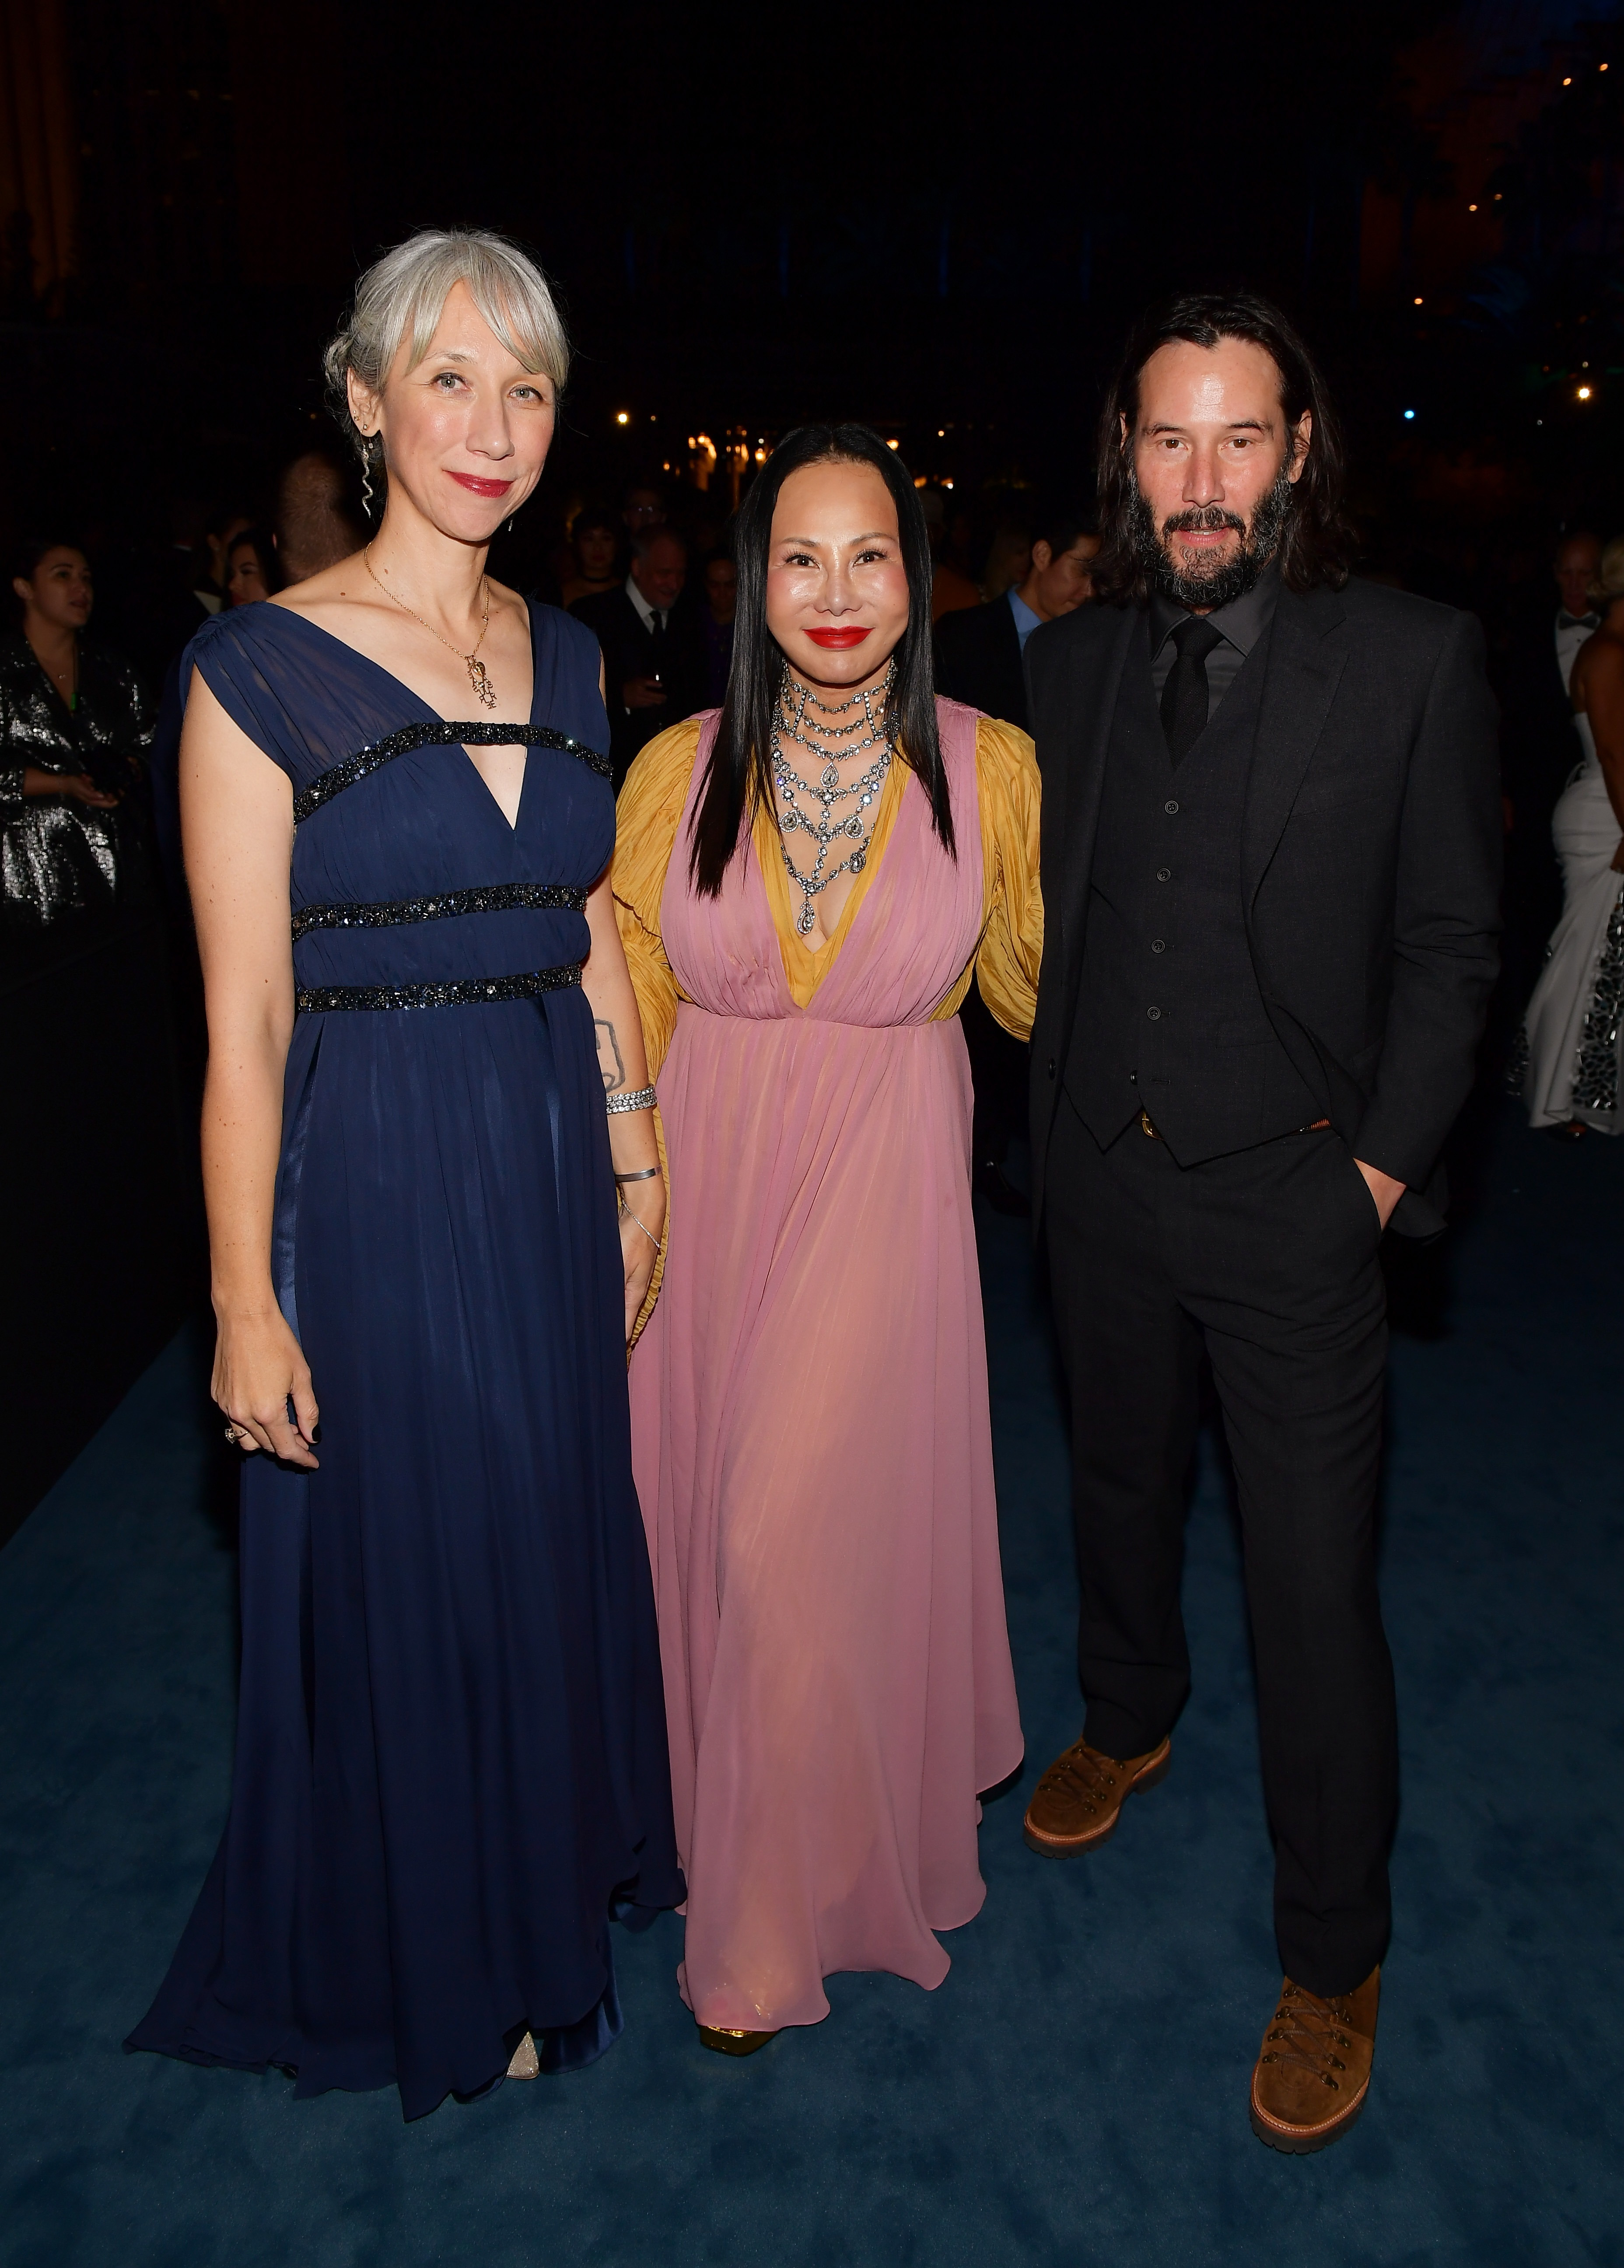 Artist Alexandra Grant, Gala Co-Chair and LACMA Trustee Eva Chow, and Keanu Reeves, photo by Matt Winkelmeyer/Getty Images for LACMA